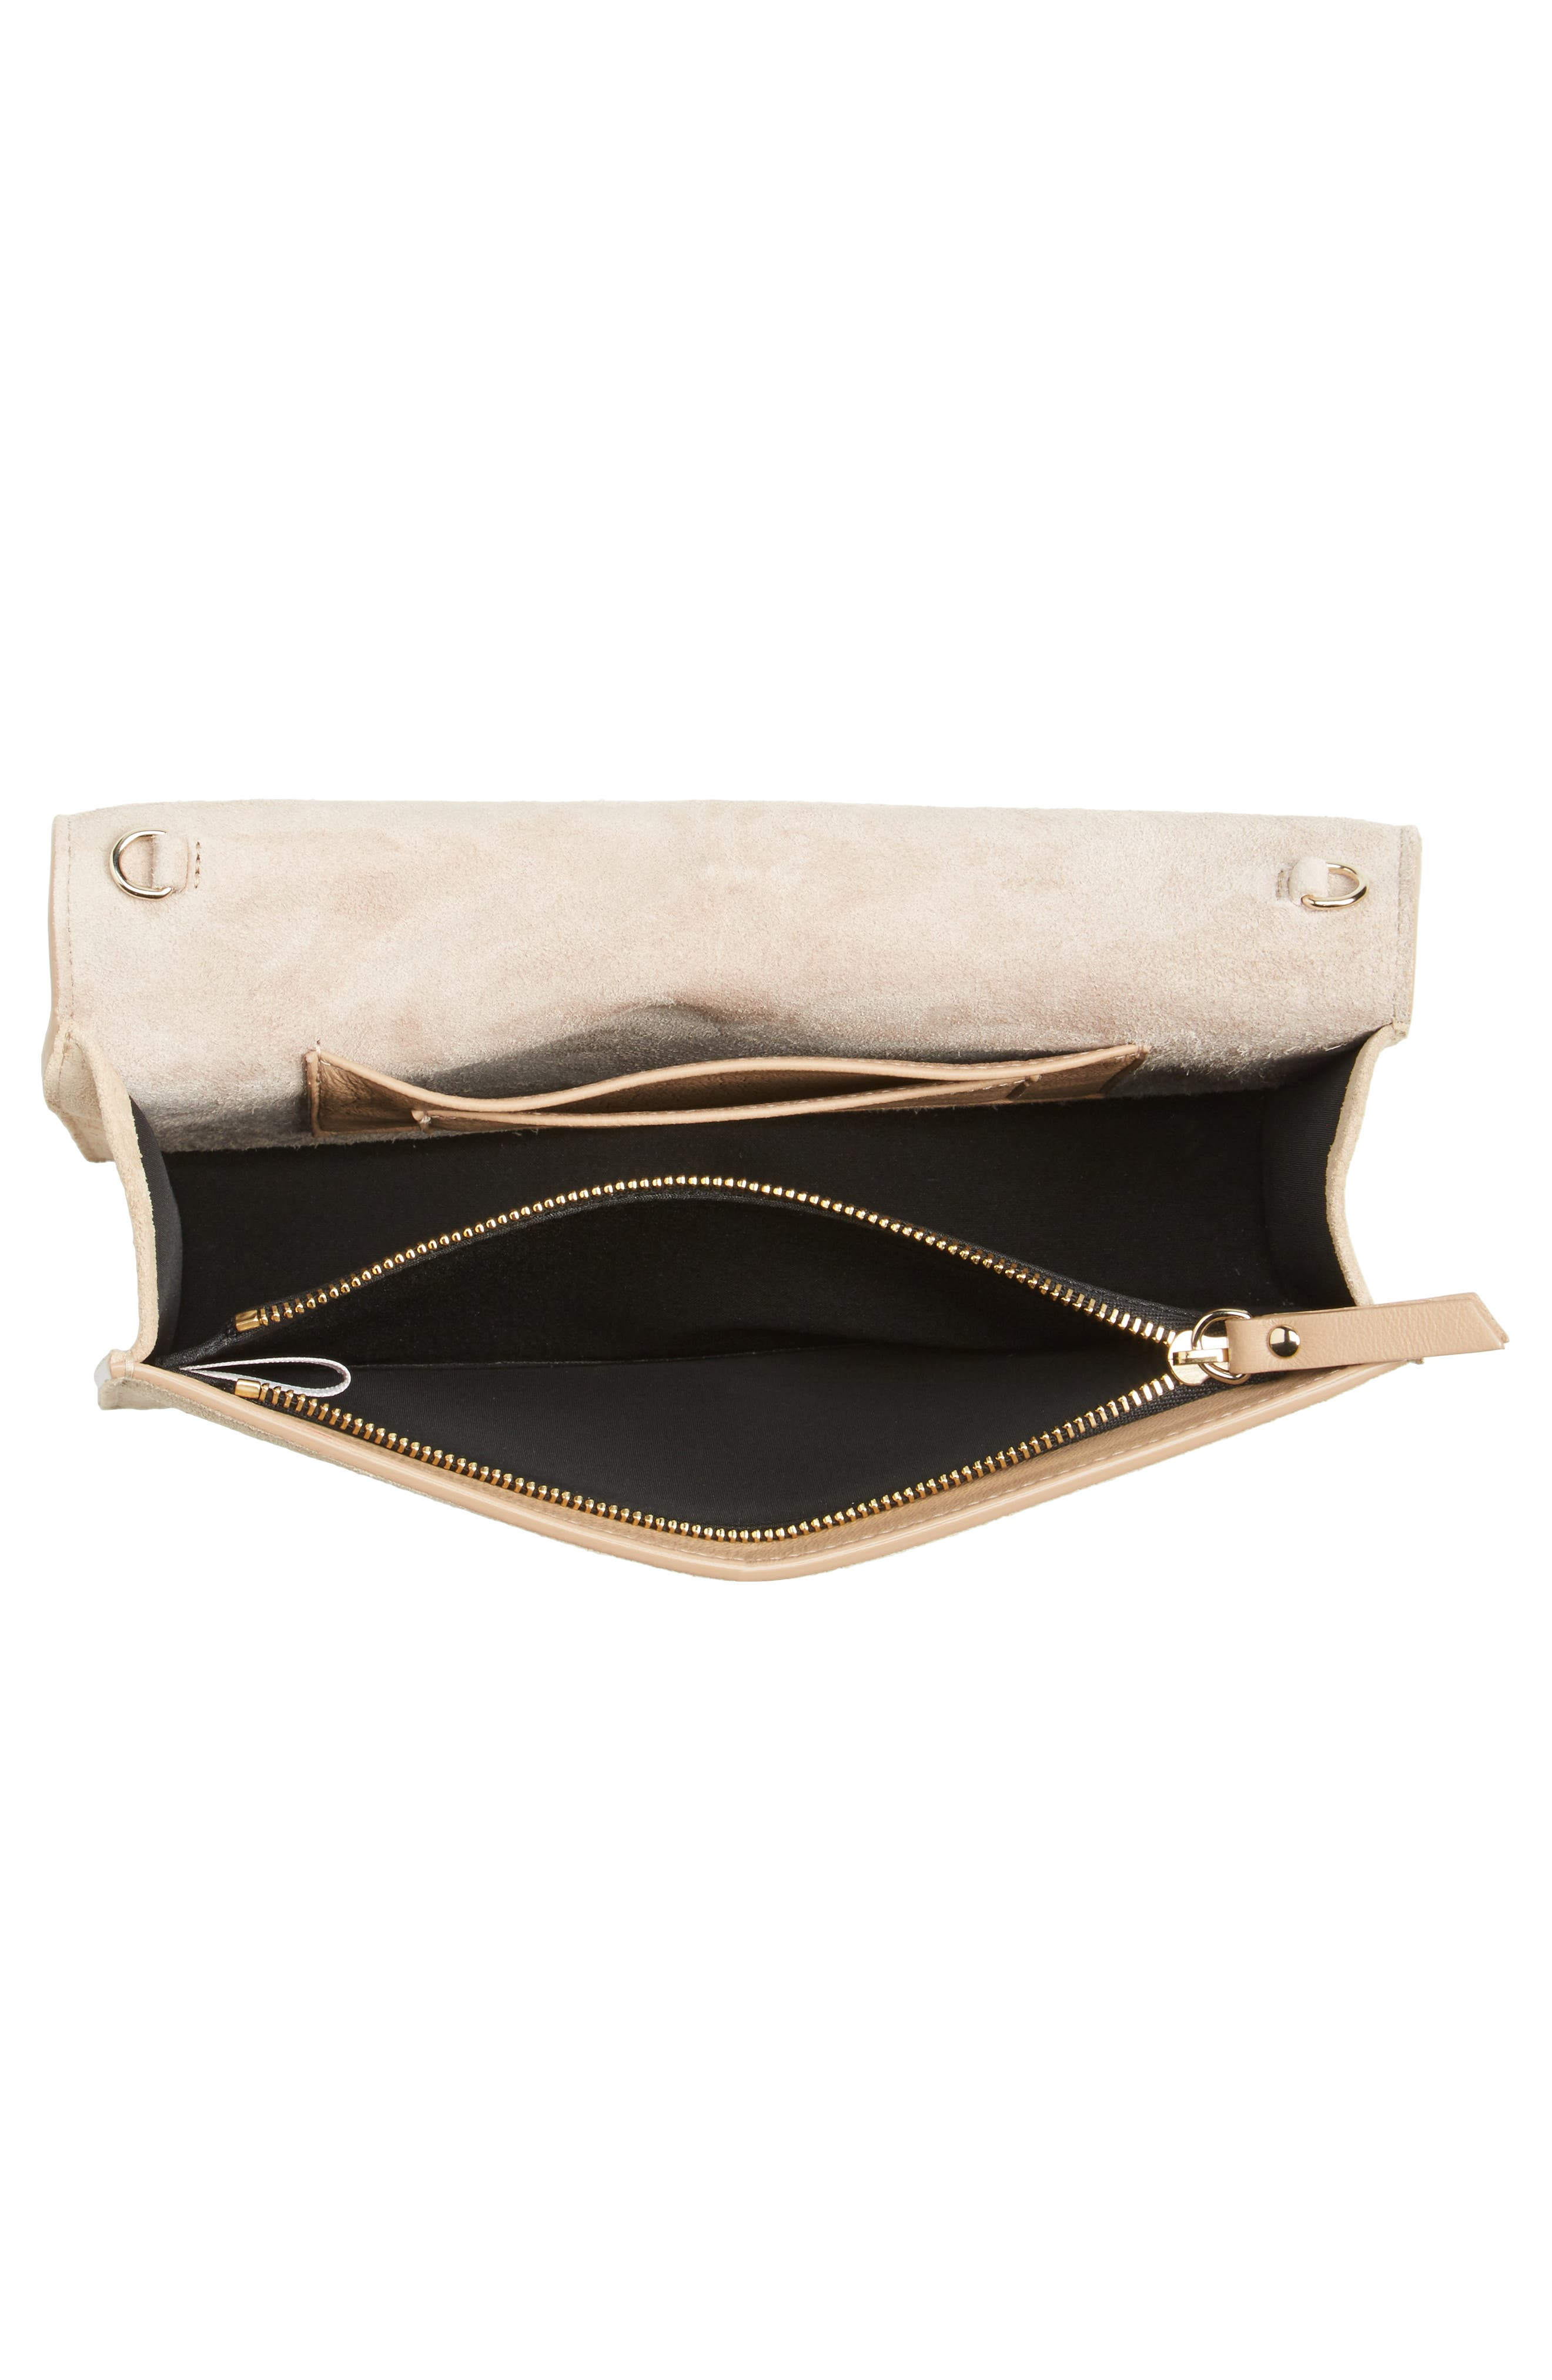 Florence Patent Leather & Suede Clutch,                             Alternate thumbnail 4, color,                             NUDE